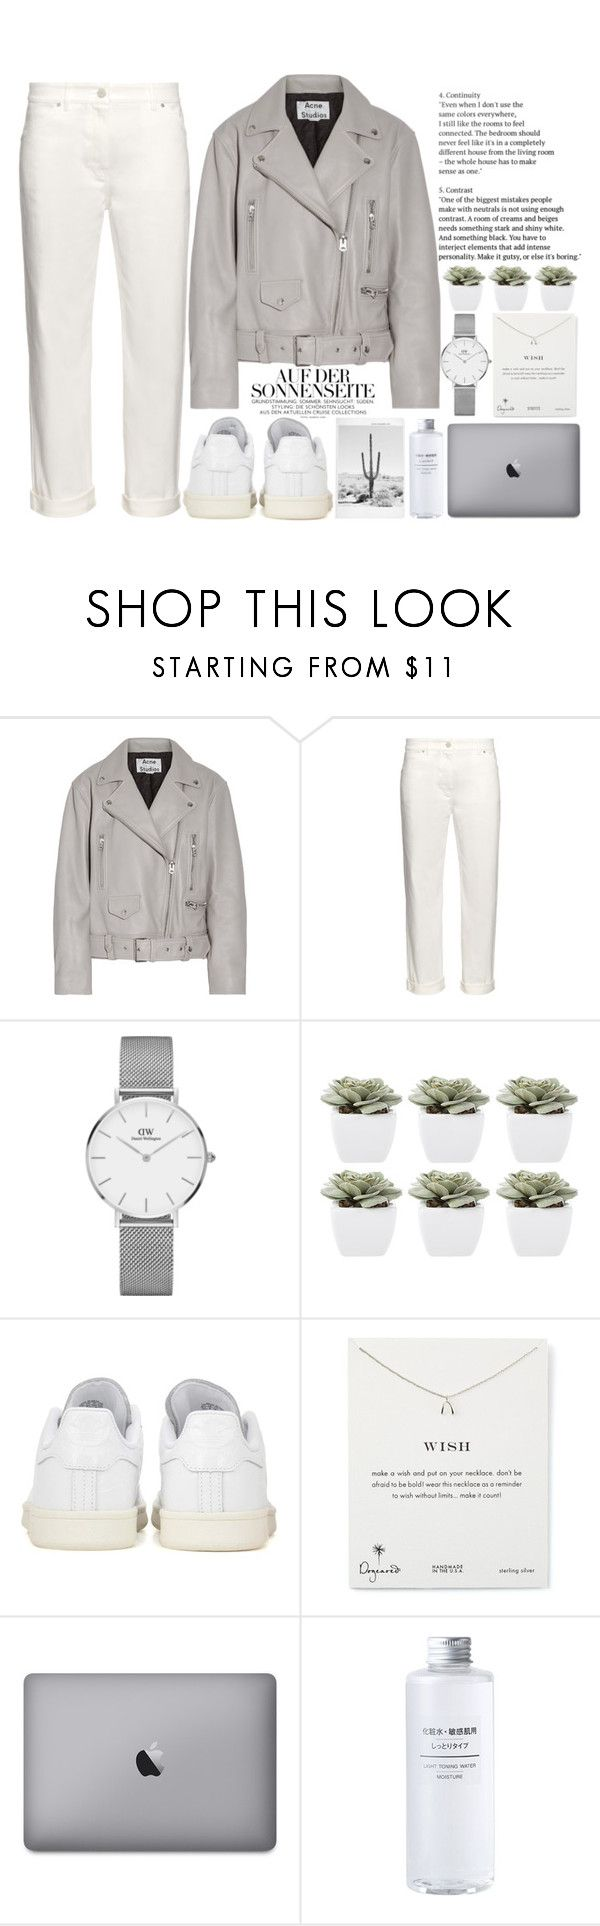 """Silvery"" by theapapa ❤ liked on Polyvore featuring Acne Studios, Balenciaga, Daniel Wellington, Abigail Ahern, adidas Originals and Dogeared"